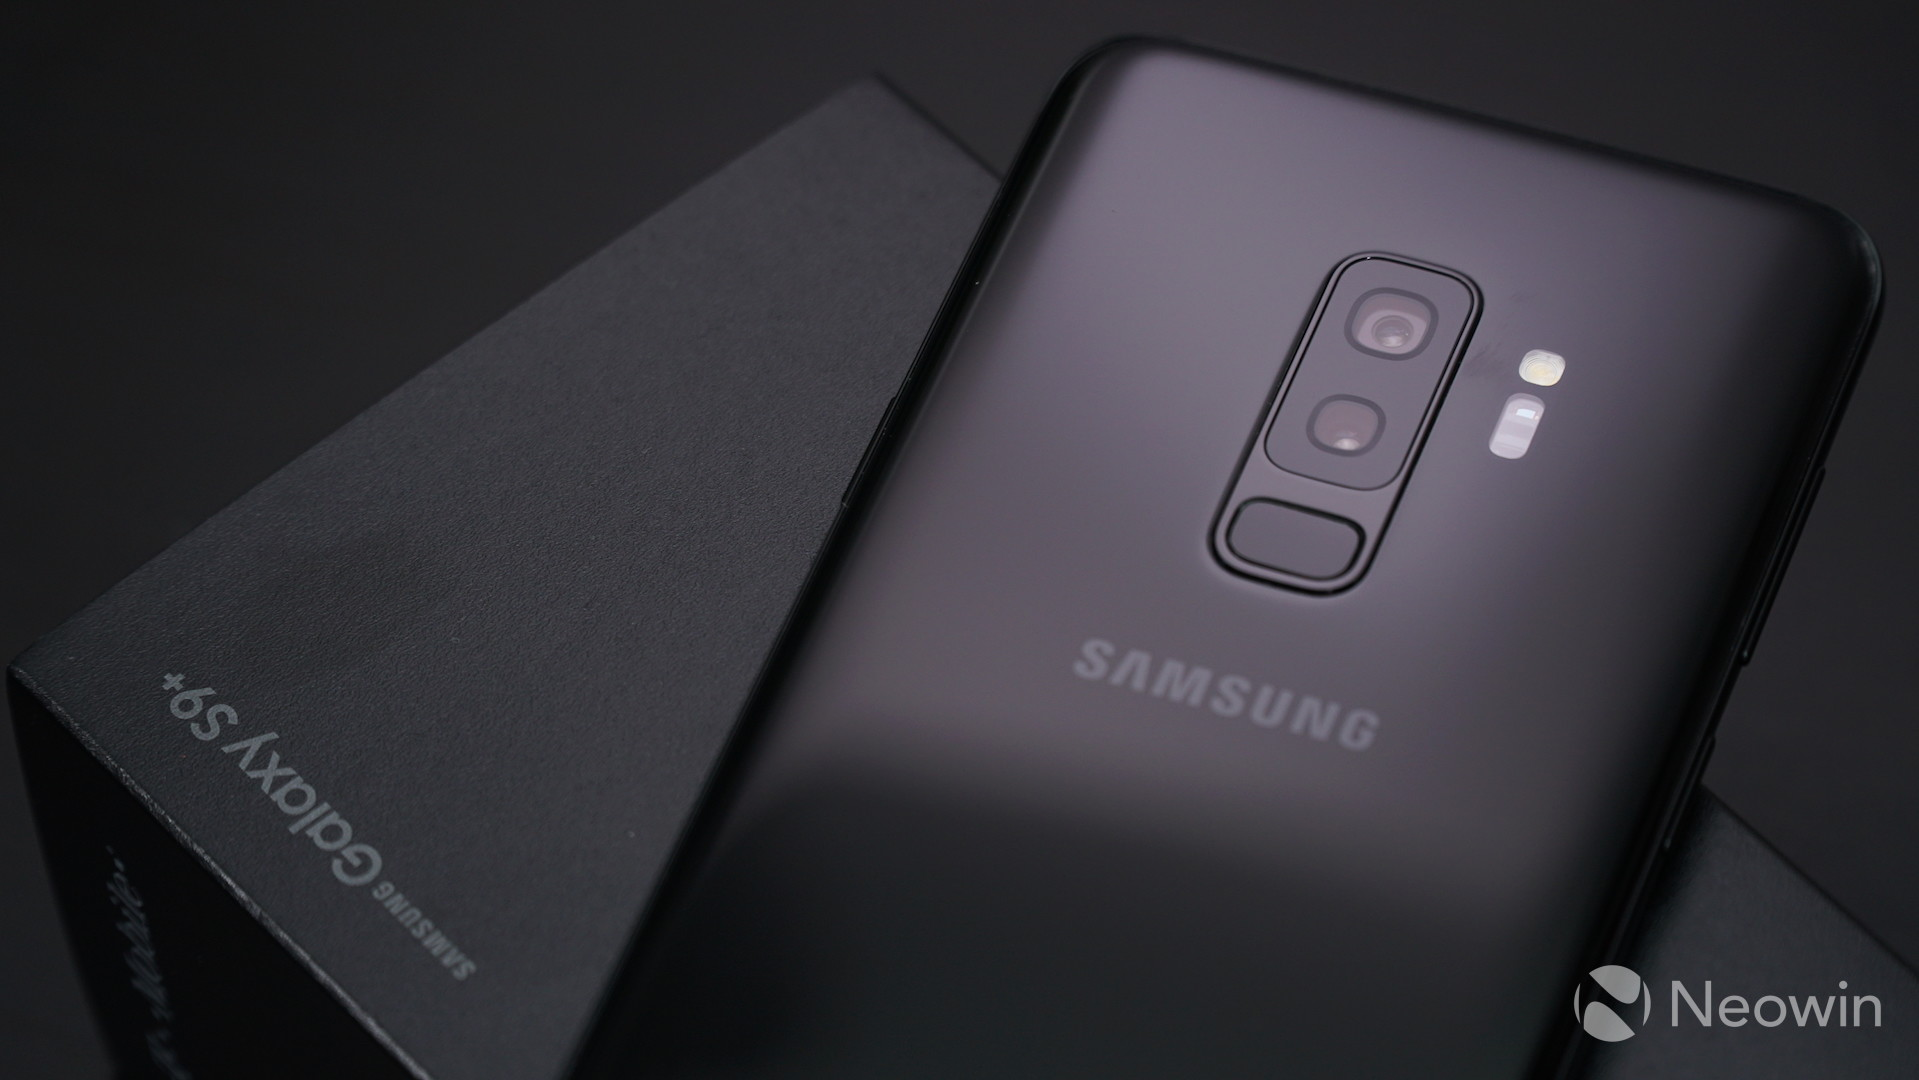 Samsung Galaxy S9+ review: Greater than the sum of its parts - Neowin